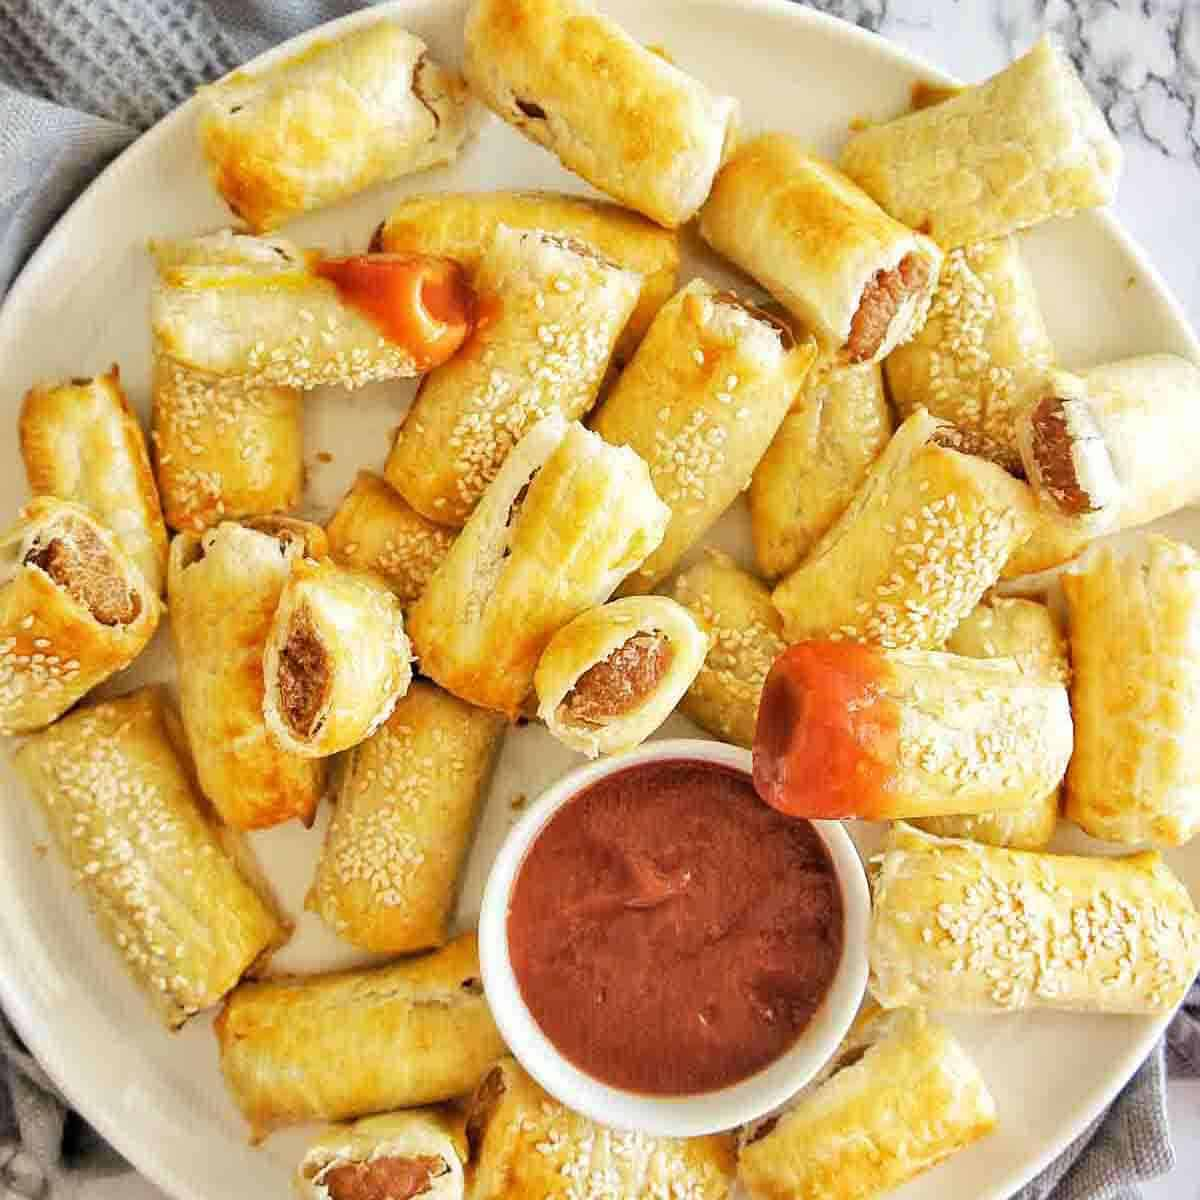 Sausage rolls on large white platter with bowl of tomato sauce